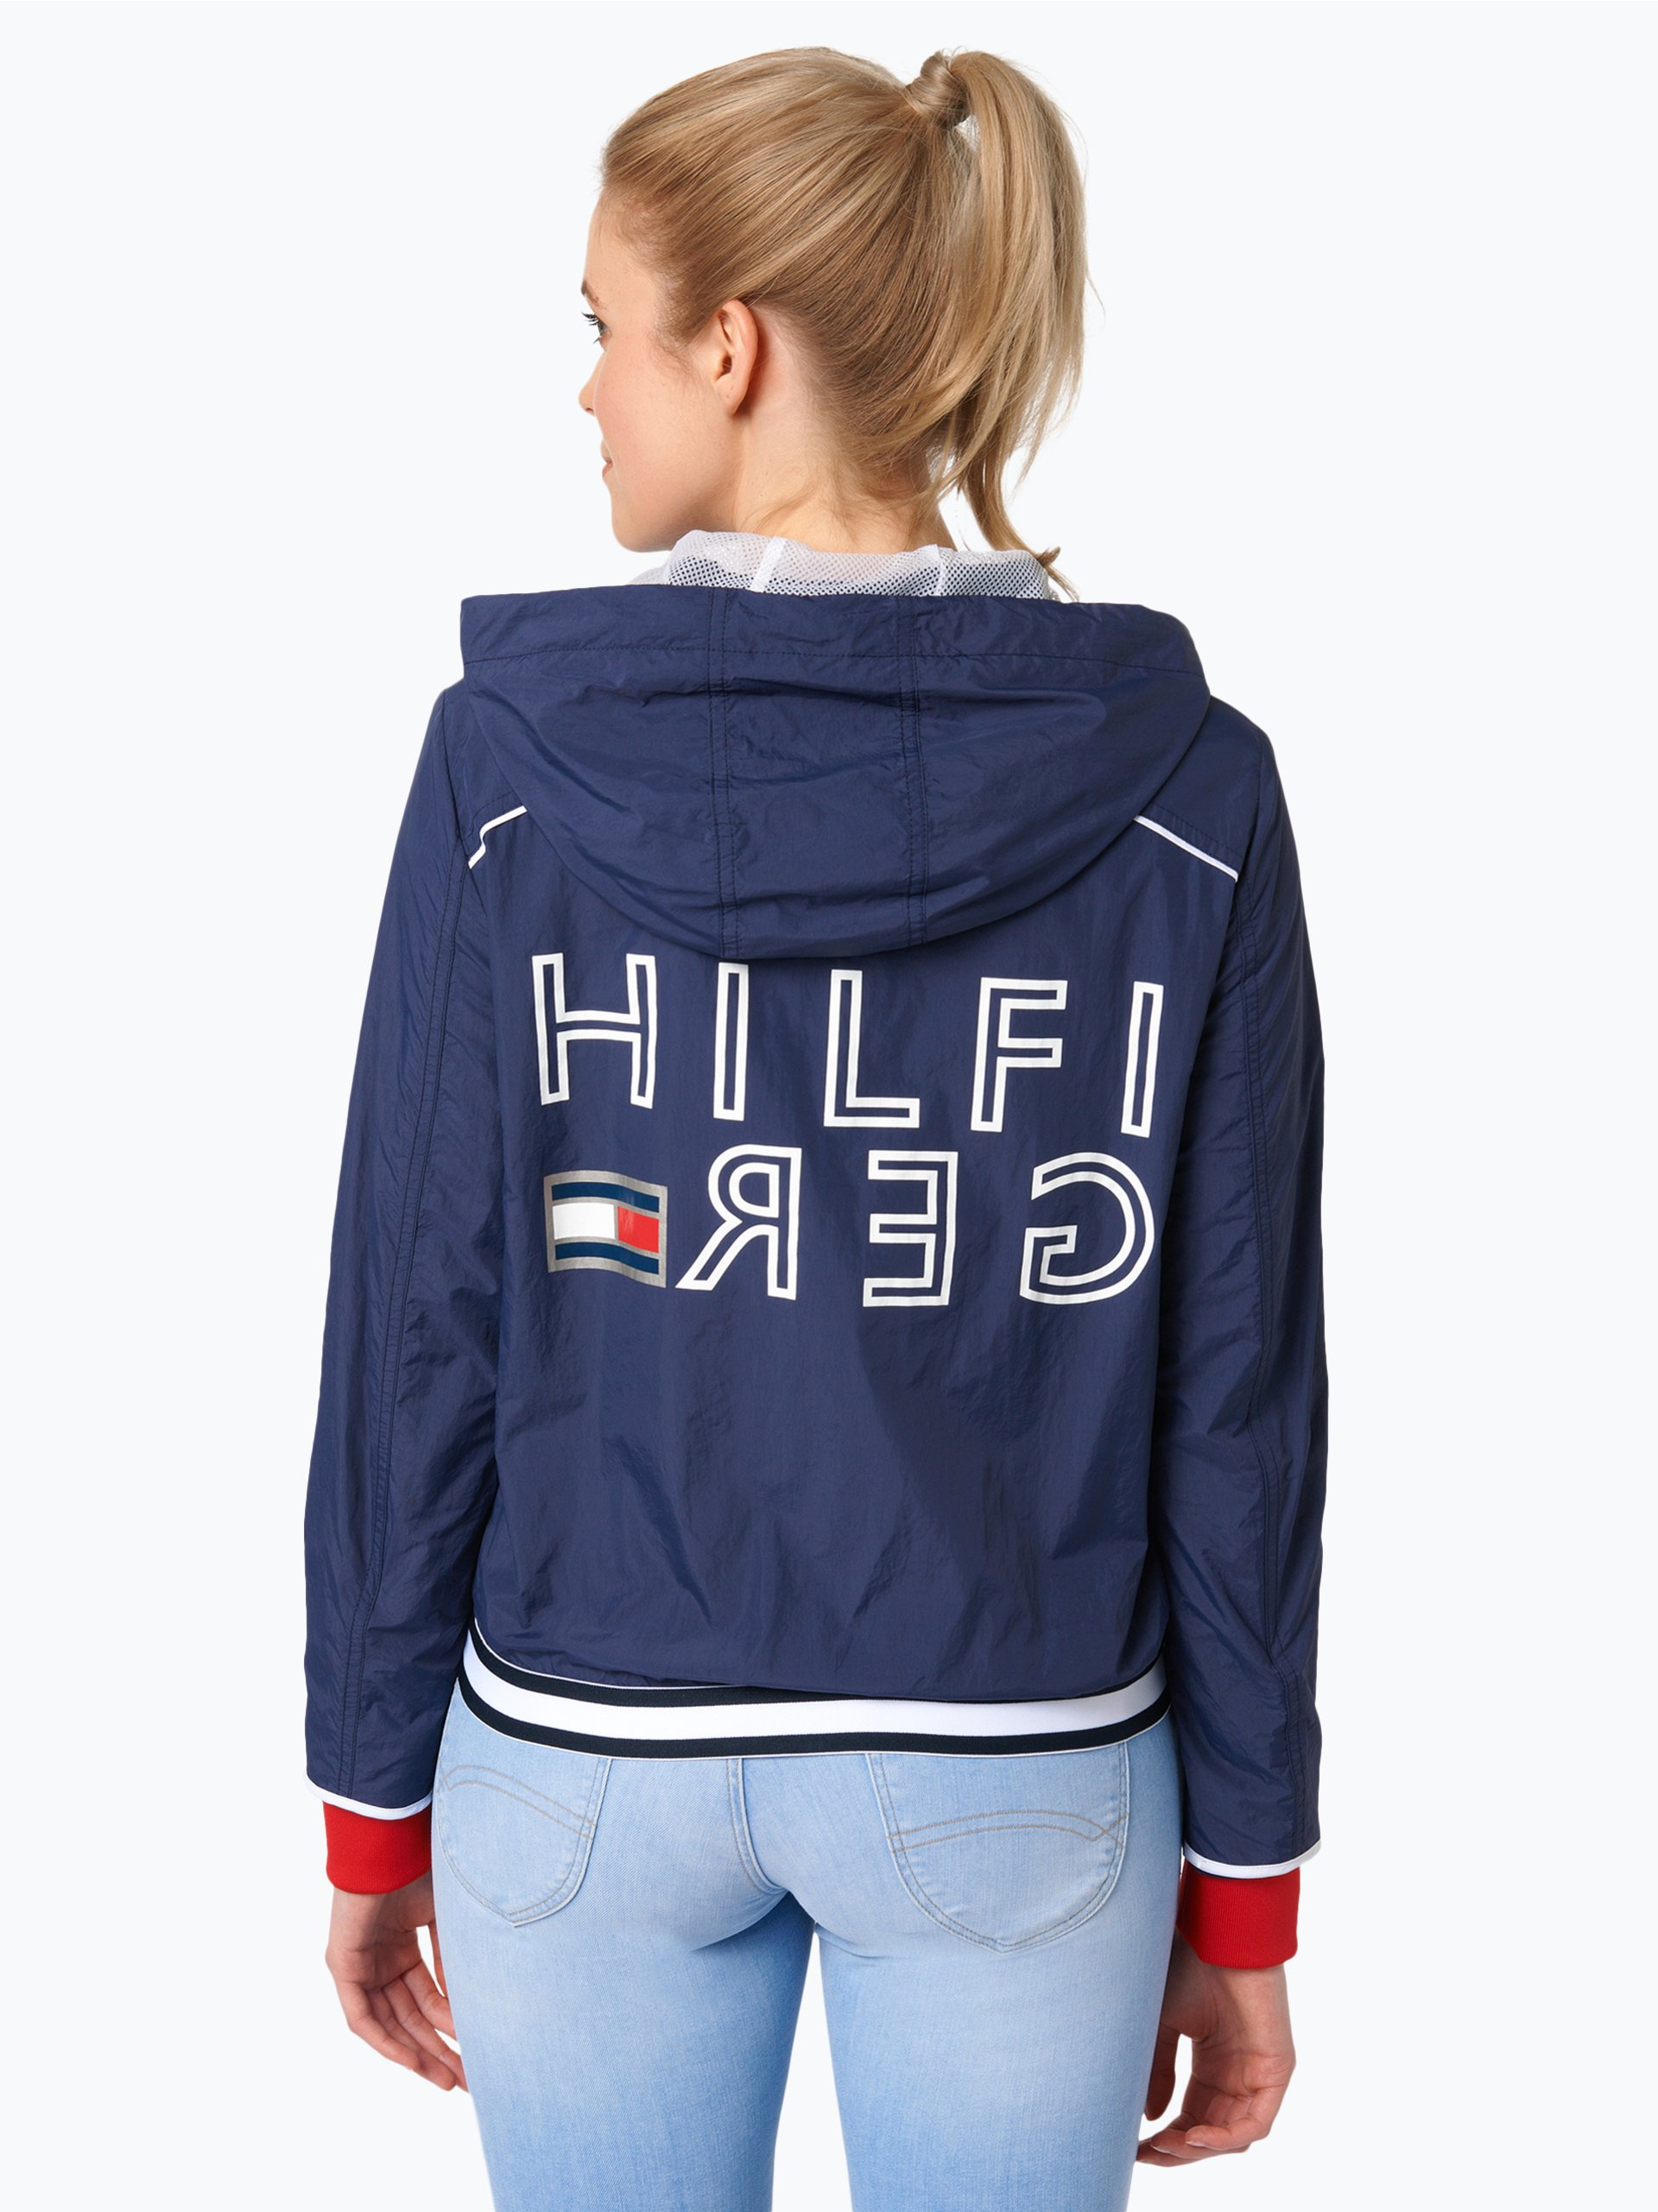 tommy hilfiger damen jacke romana marine uni online. Black Bedroom Furniture Sets. Home Design Ideas